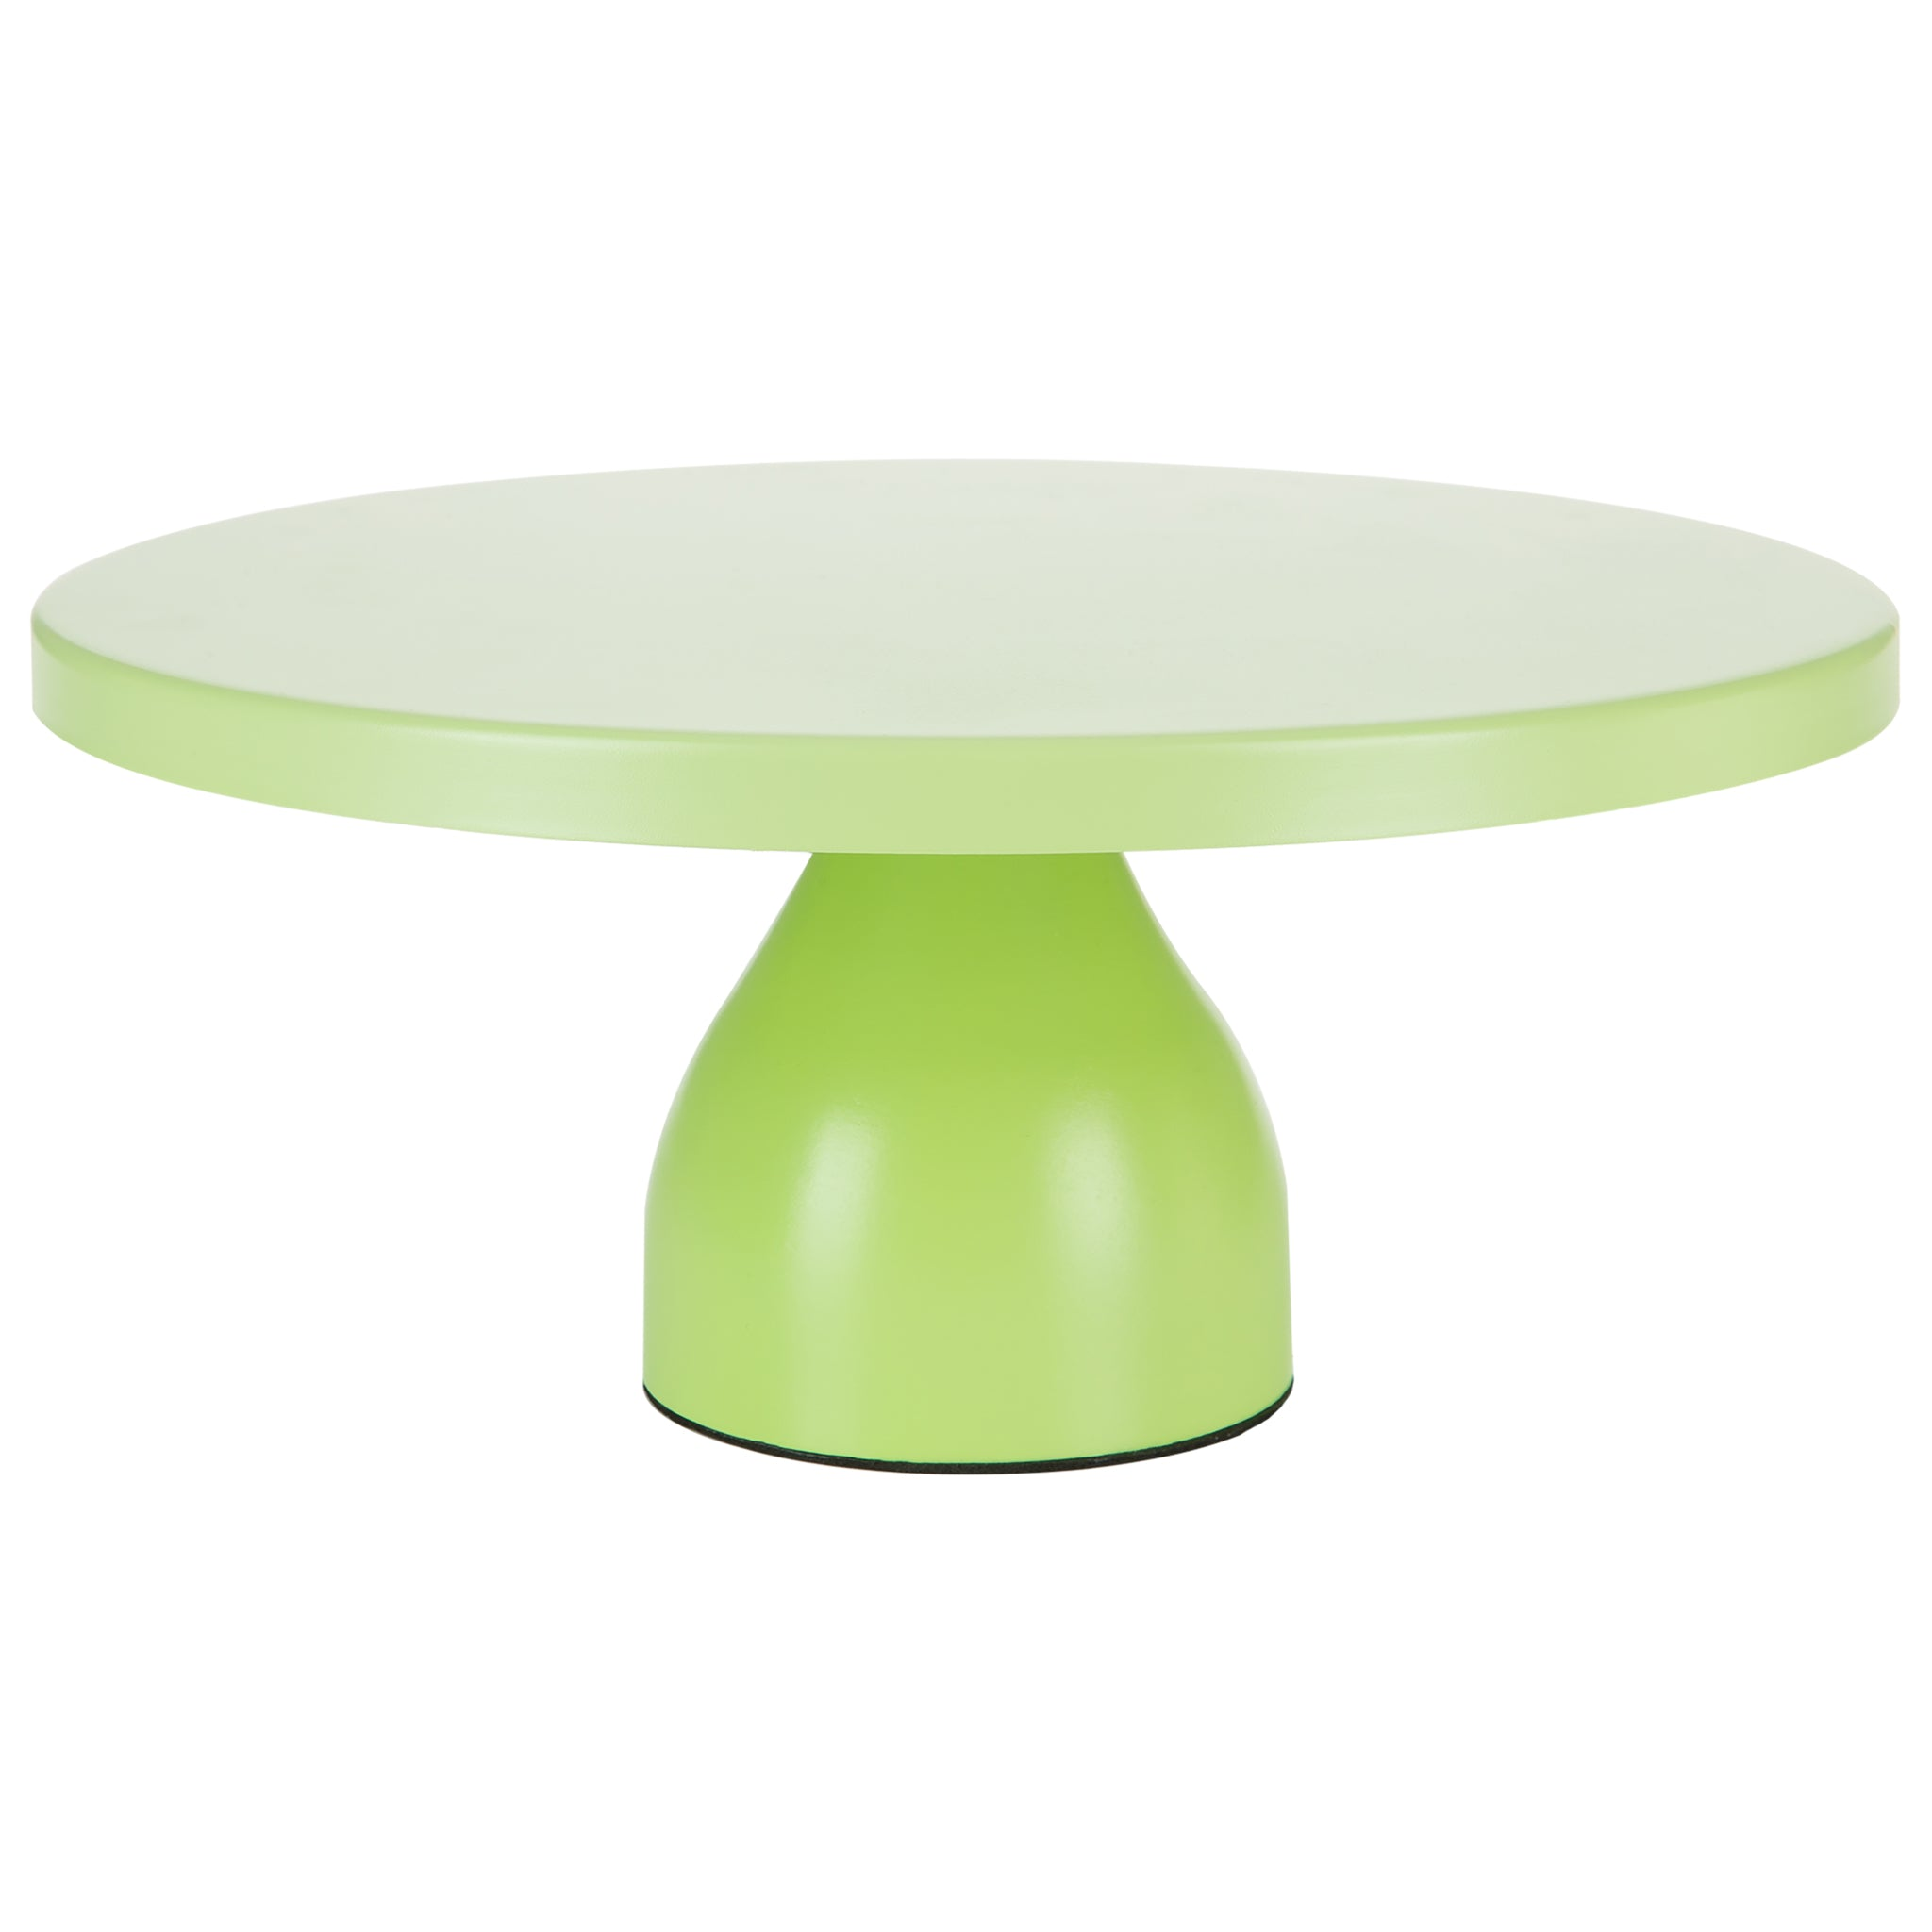 Amalfi Decor 12 Inch Round Modern Metal Wedding Cake Stand (Lime Green) | Stainless Steel Frame